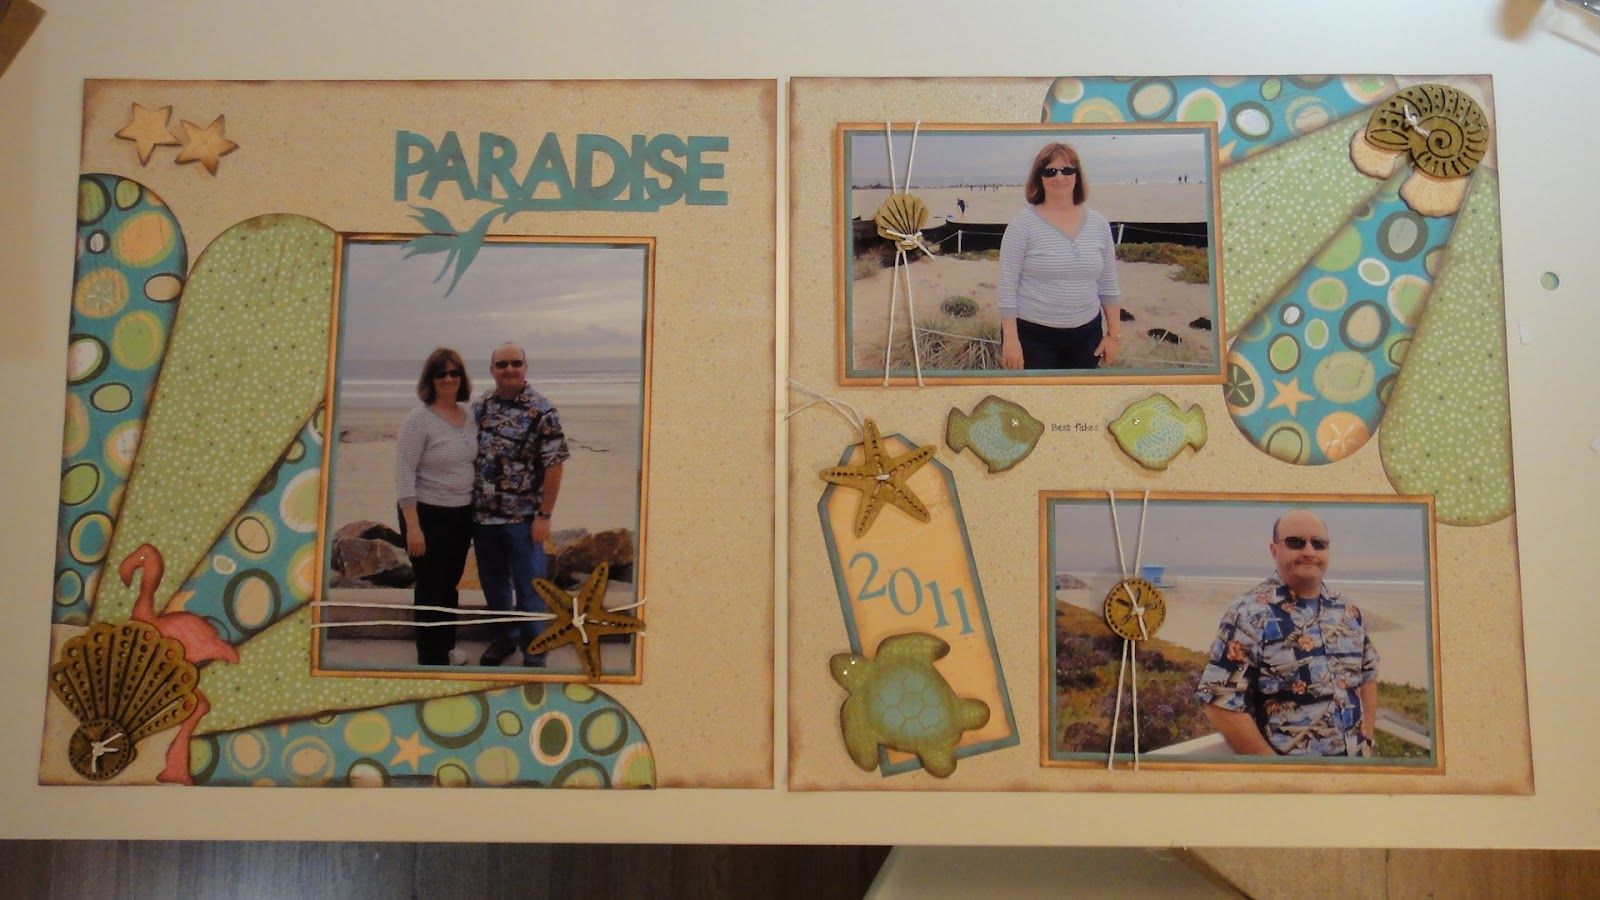 """She used Sizzix die from SU to create the fan shapes. Not sure where """"Paradise Found"""" is from that is stuck in my head, but it would be a great title for Fooloose layout."""